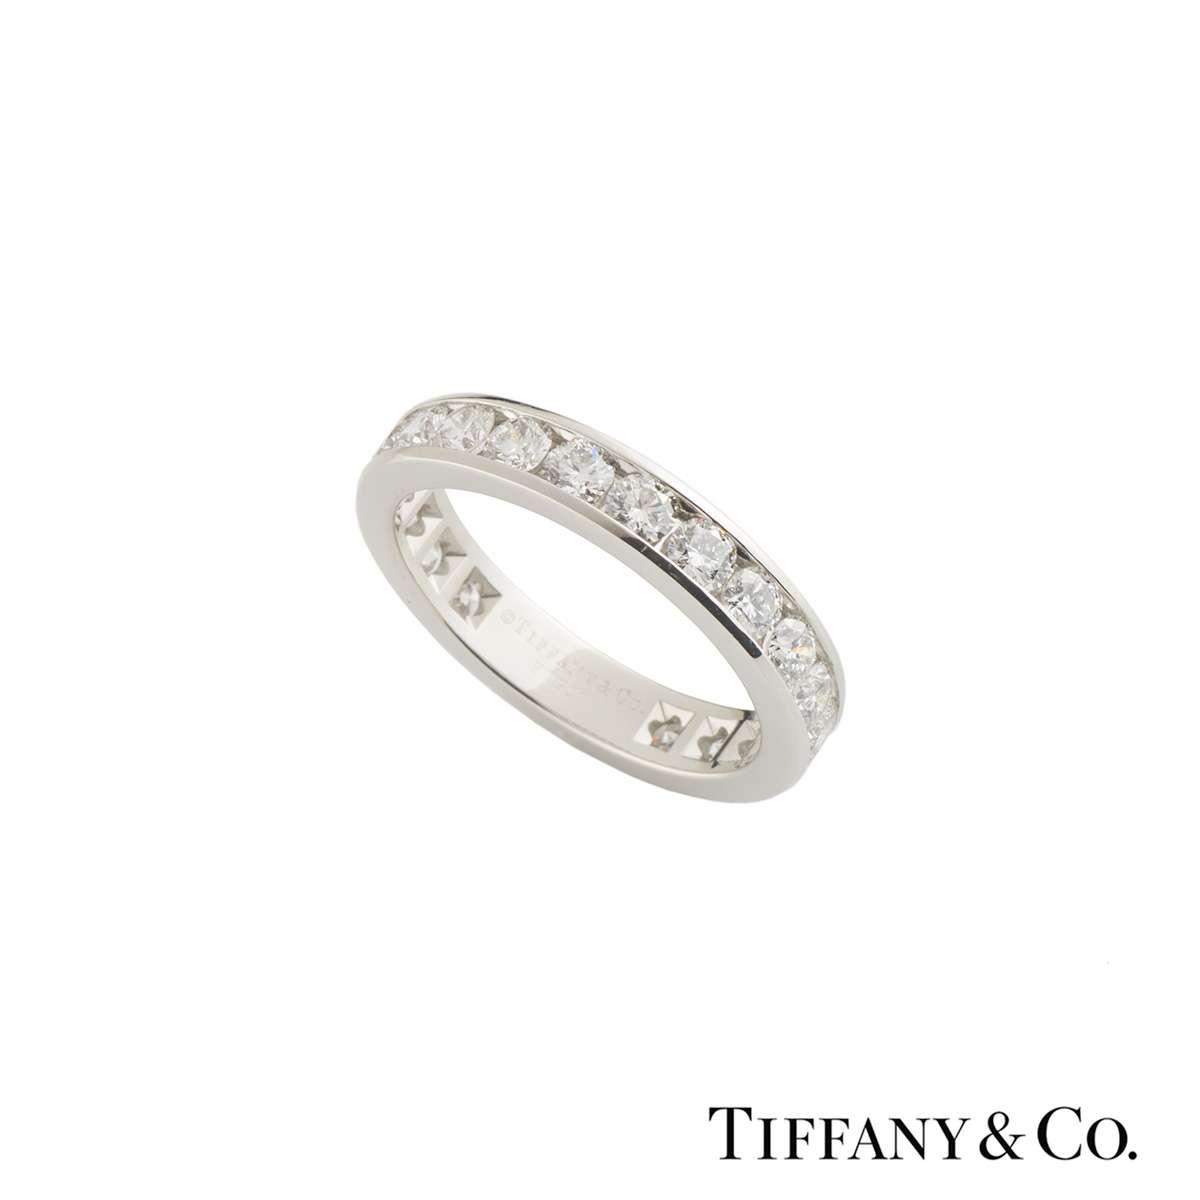 e64172cb0 Tiffany & Co. Platinum Diamond Wedding Band 1.98ct G-H/VS2